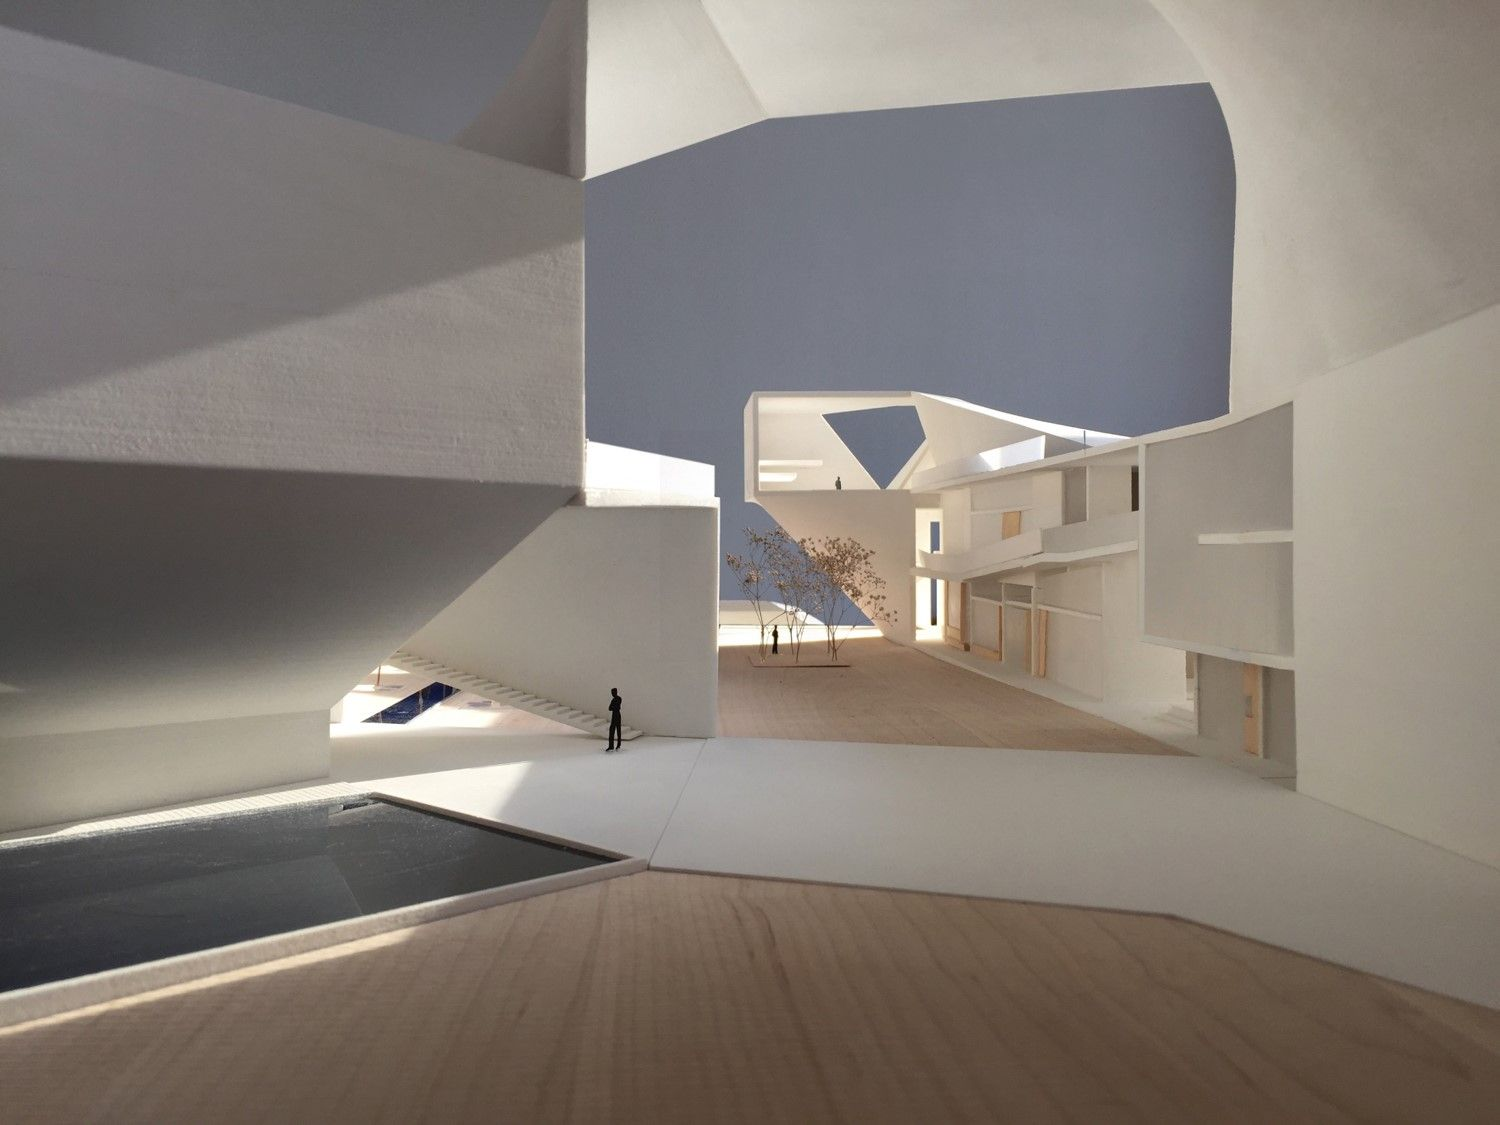 <span>Model photo from proposed new Doctorate Building for the National University of Colombia, courtesy of Steven Holl Architects</span>